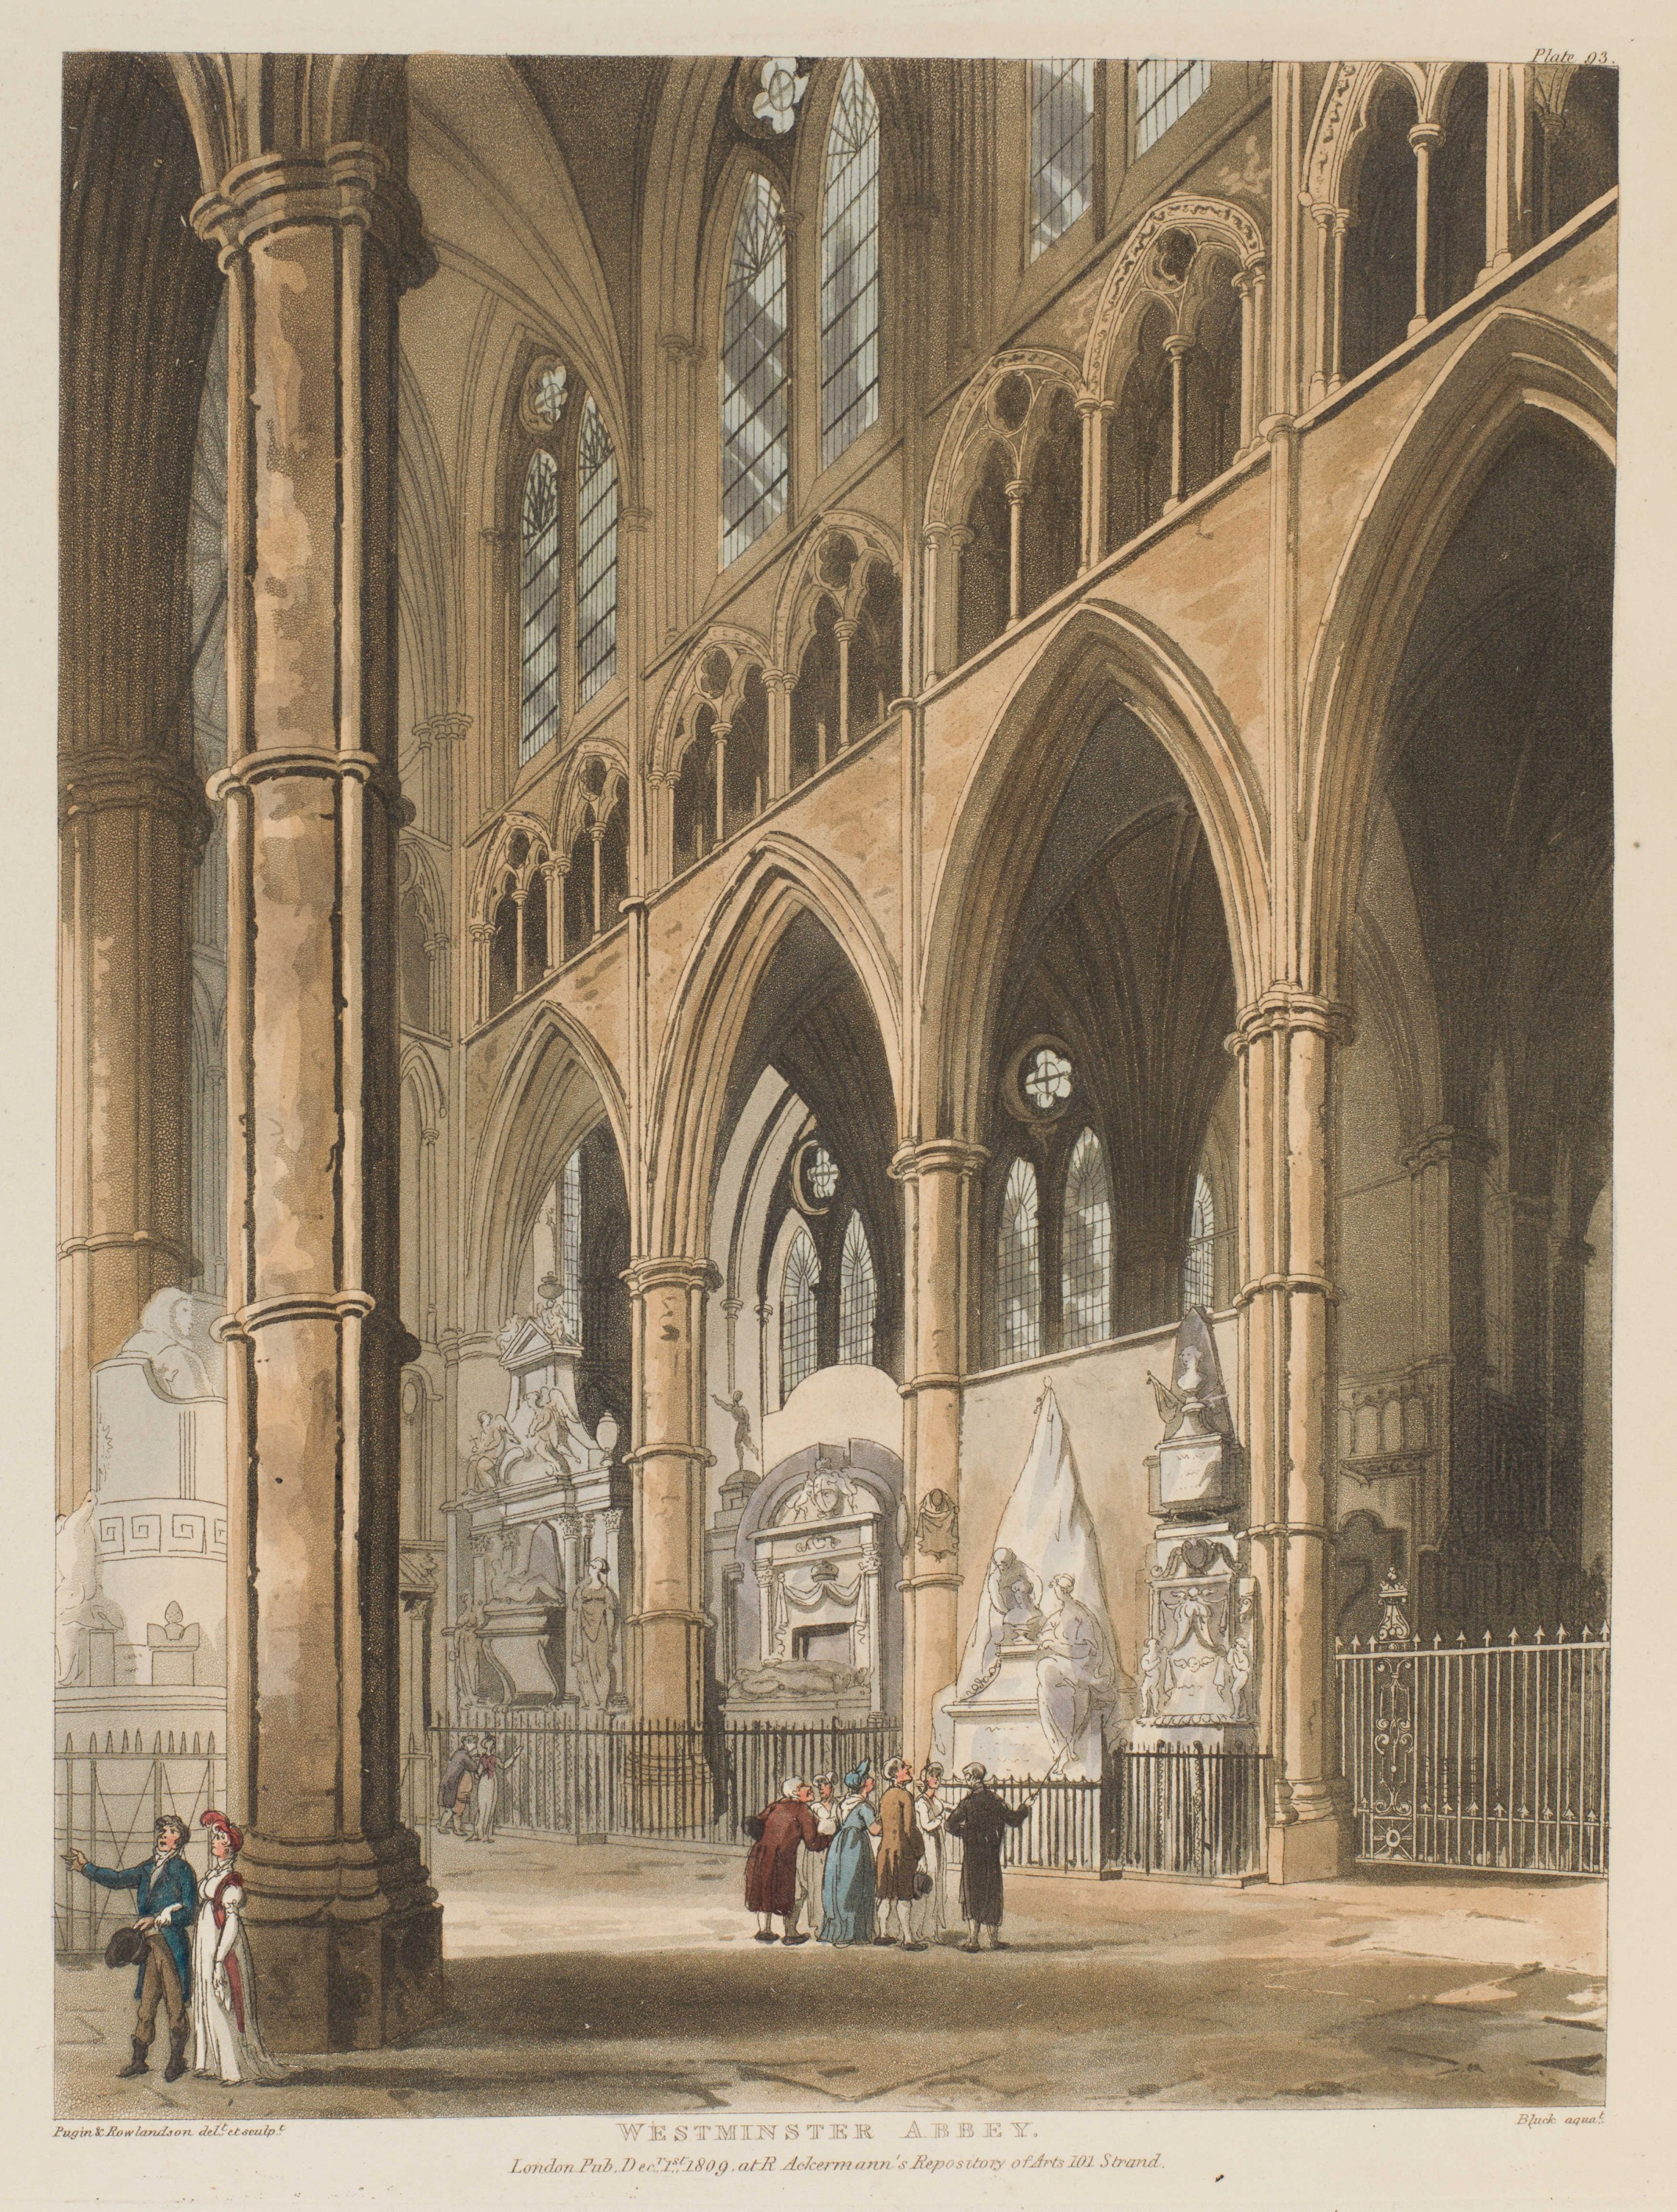 093 - Westminster Abbey